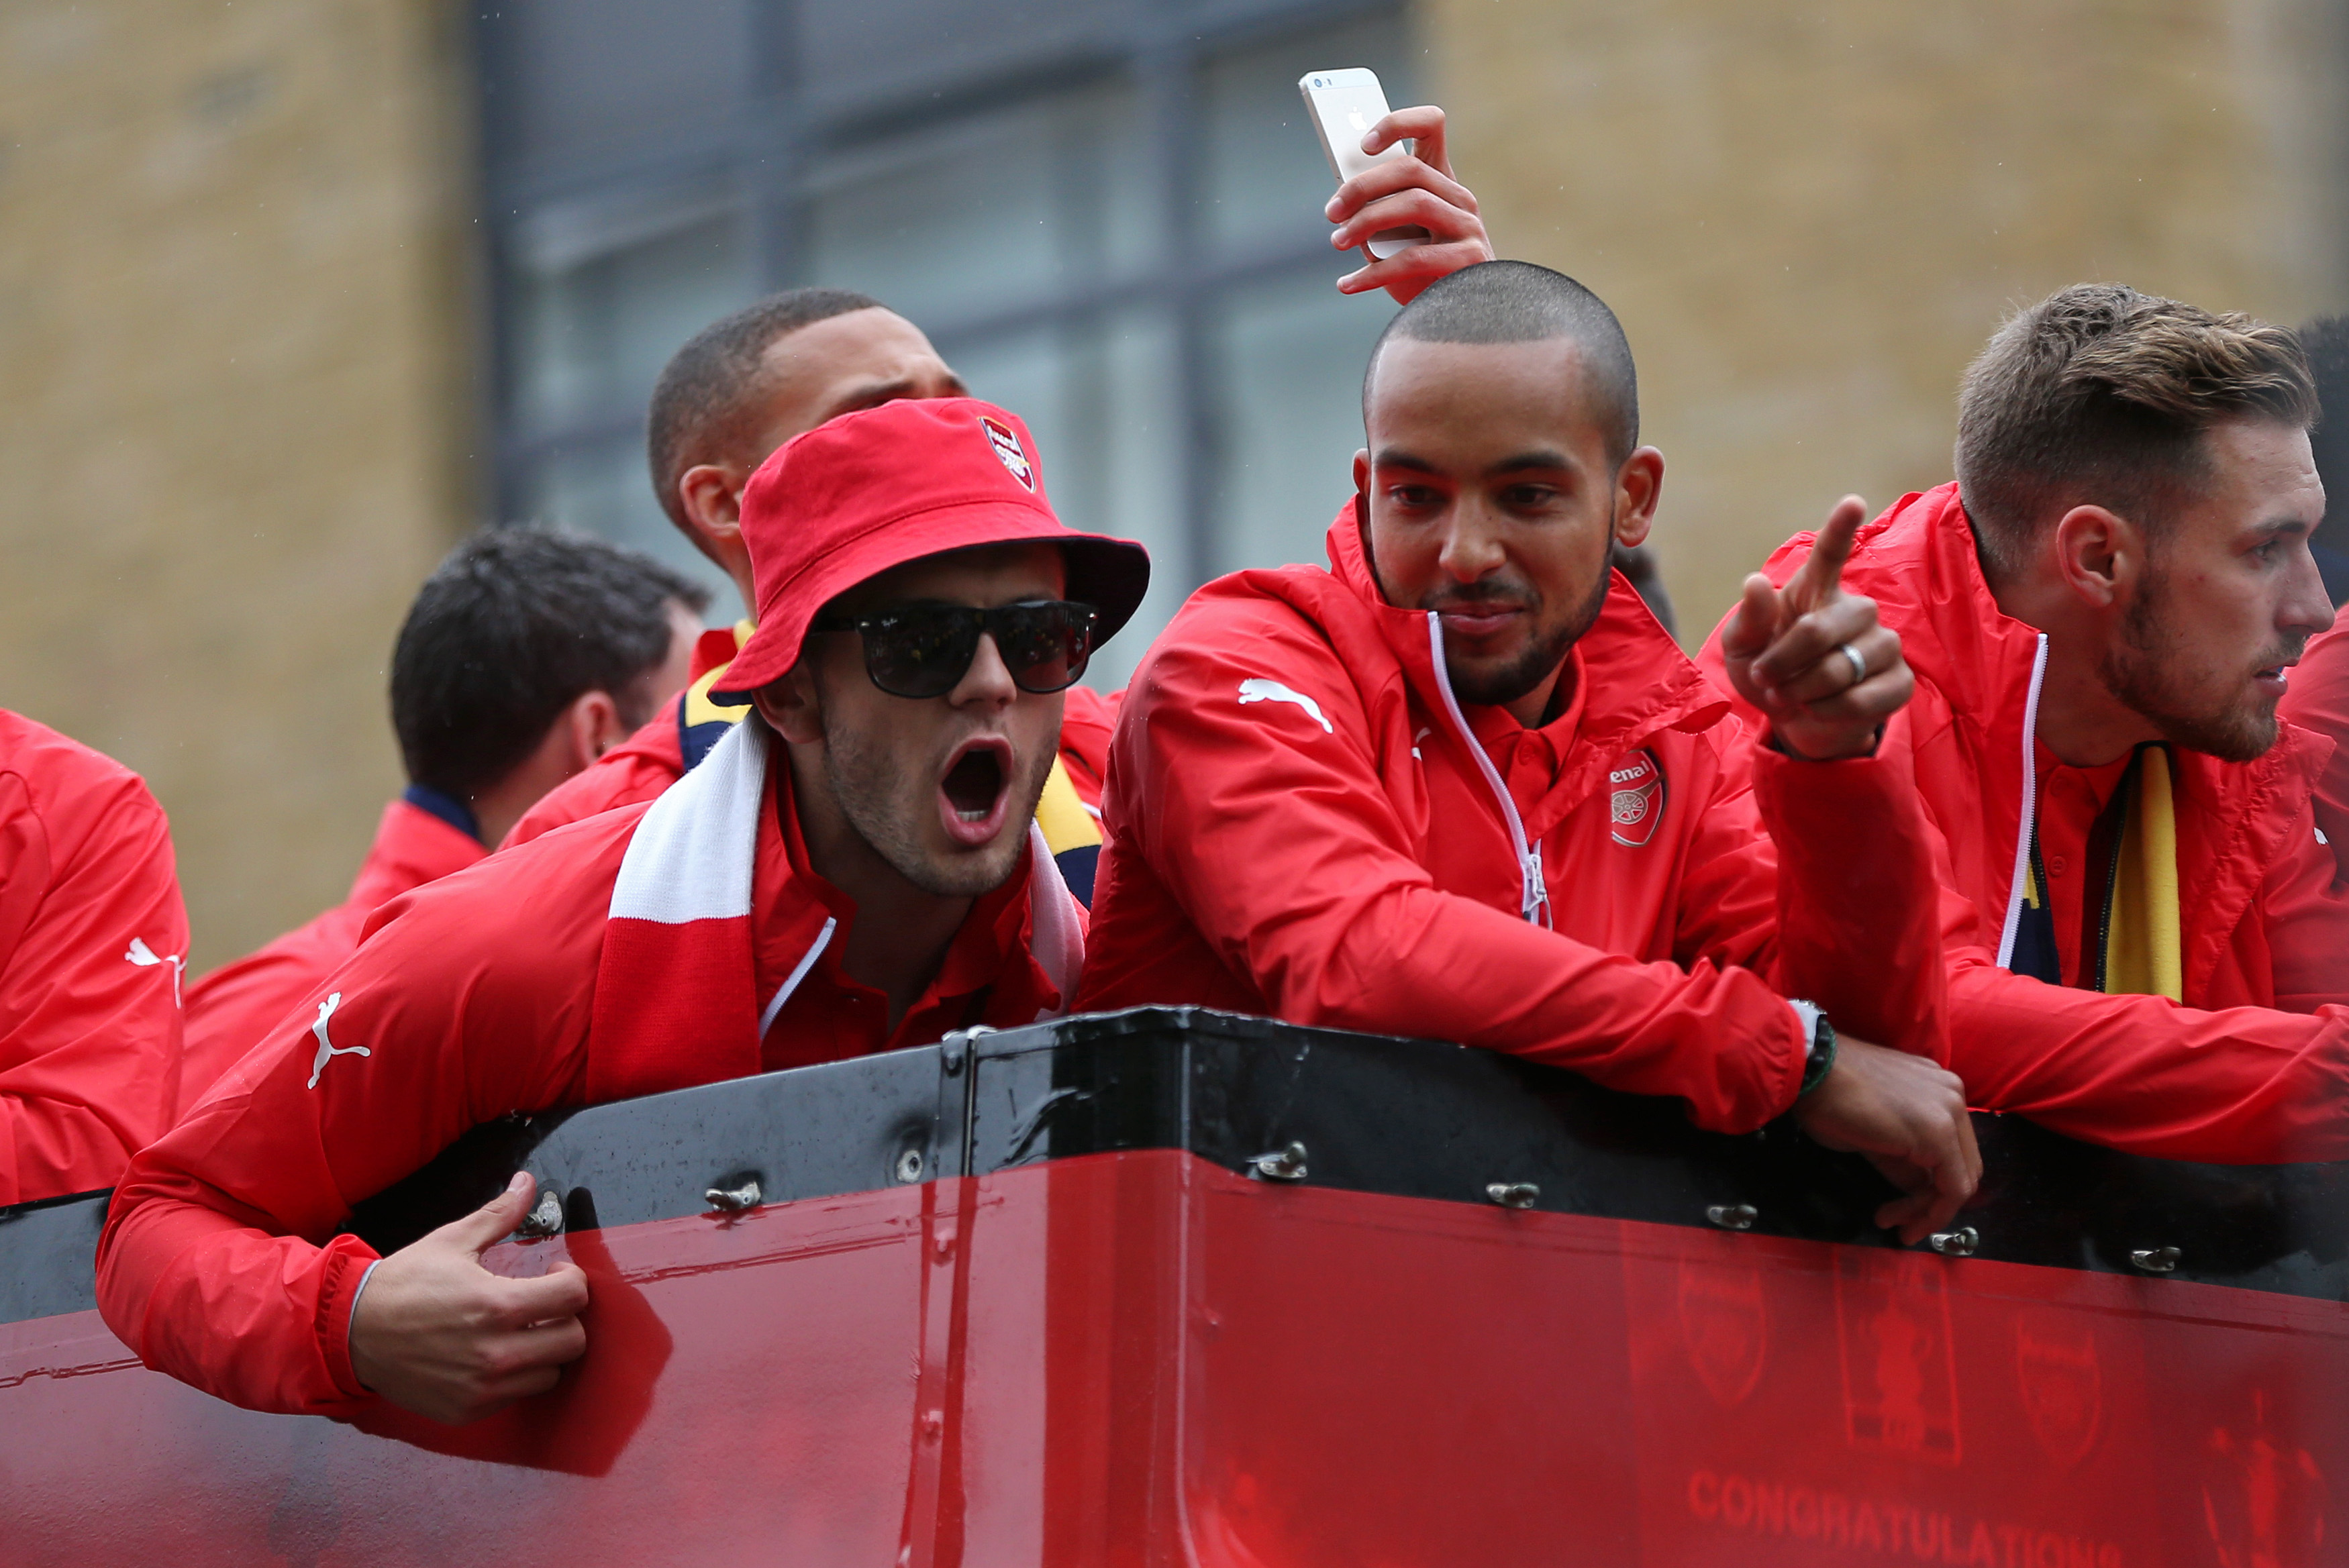 Arsenal trophy parade: Jack Wilshere leads expletive-laden anti-Tottenham songs